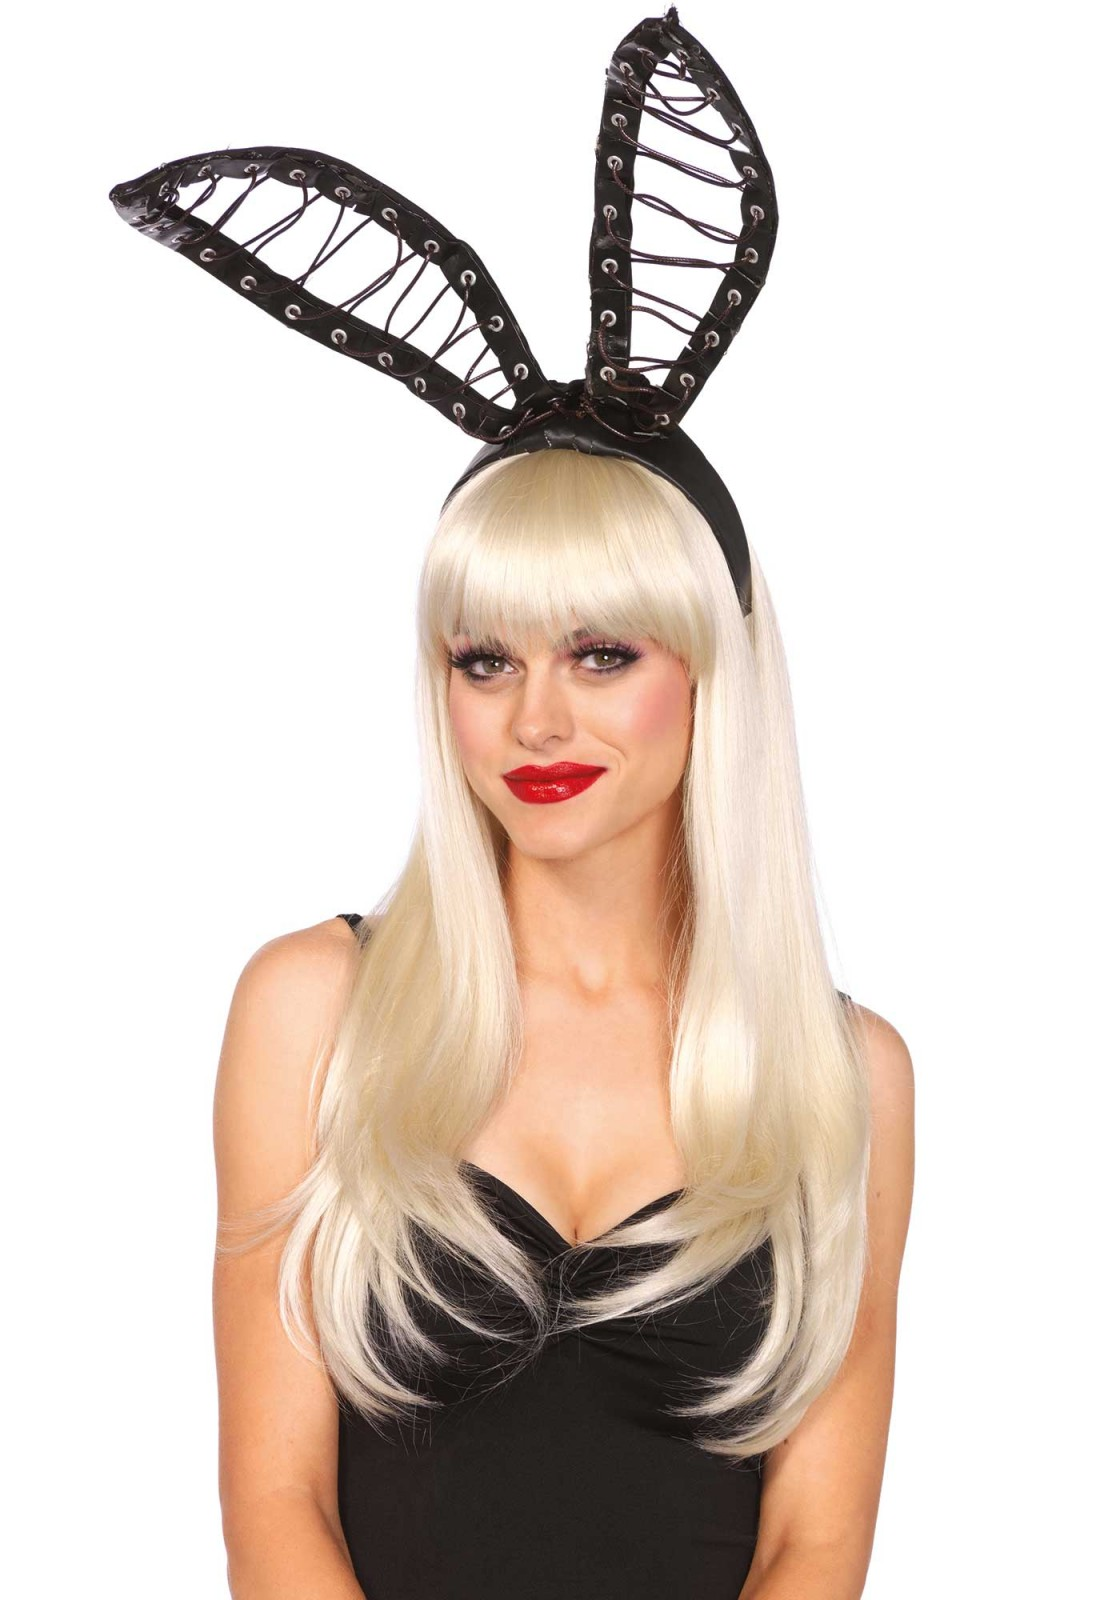 These oversized bunny ears are a perfect addition to any party outfit. The ears are attached to a headband. Also, the oversized satin ears are bendable.